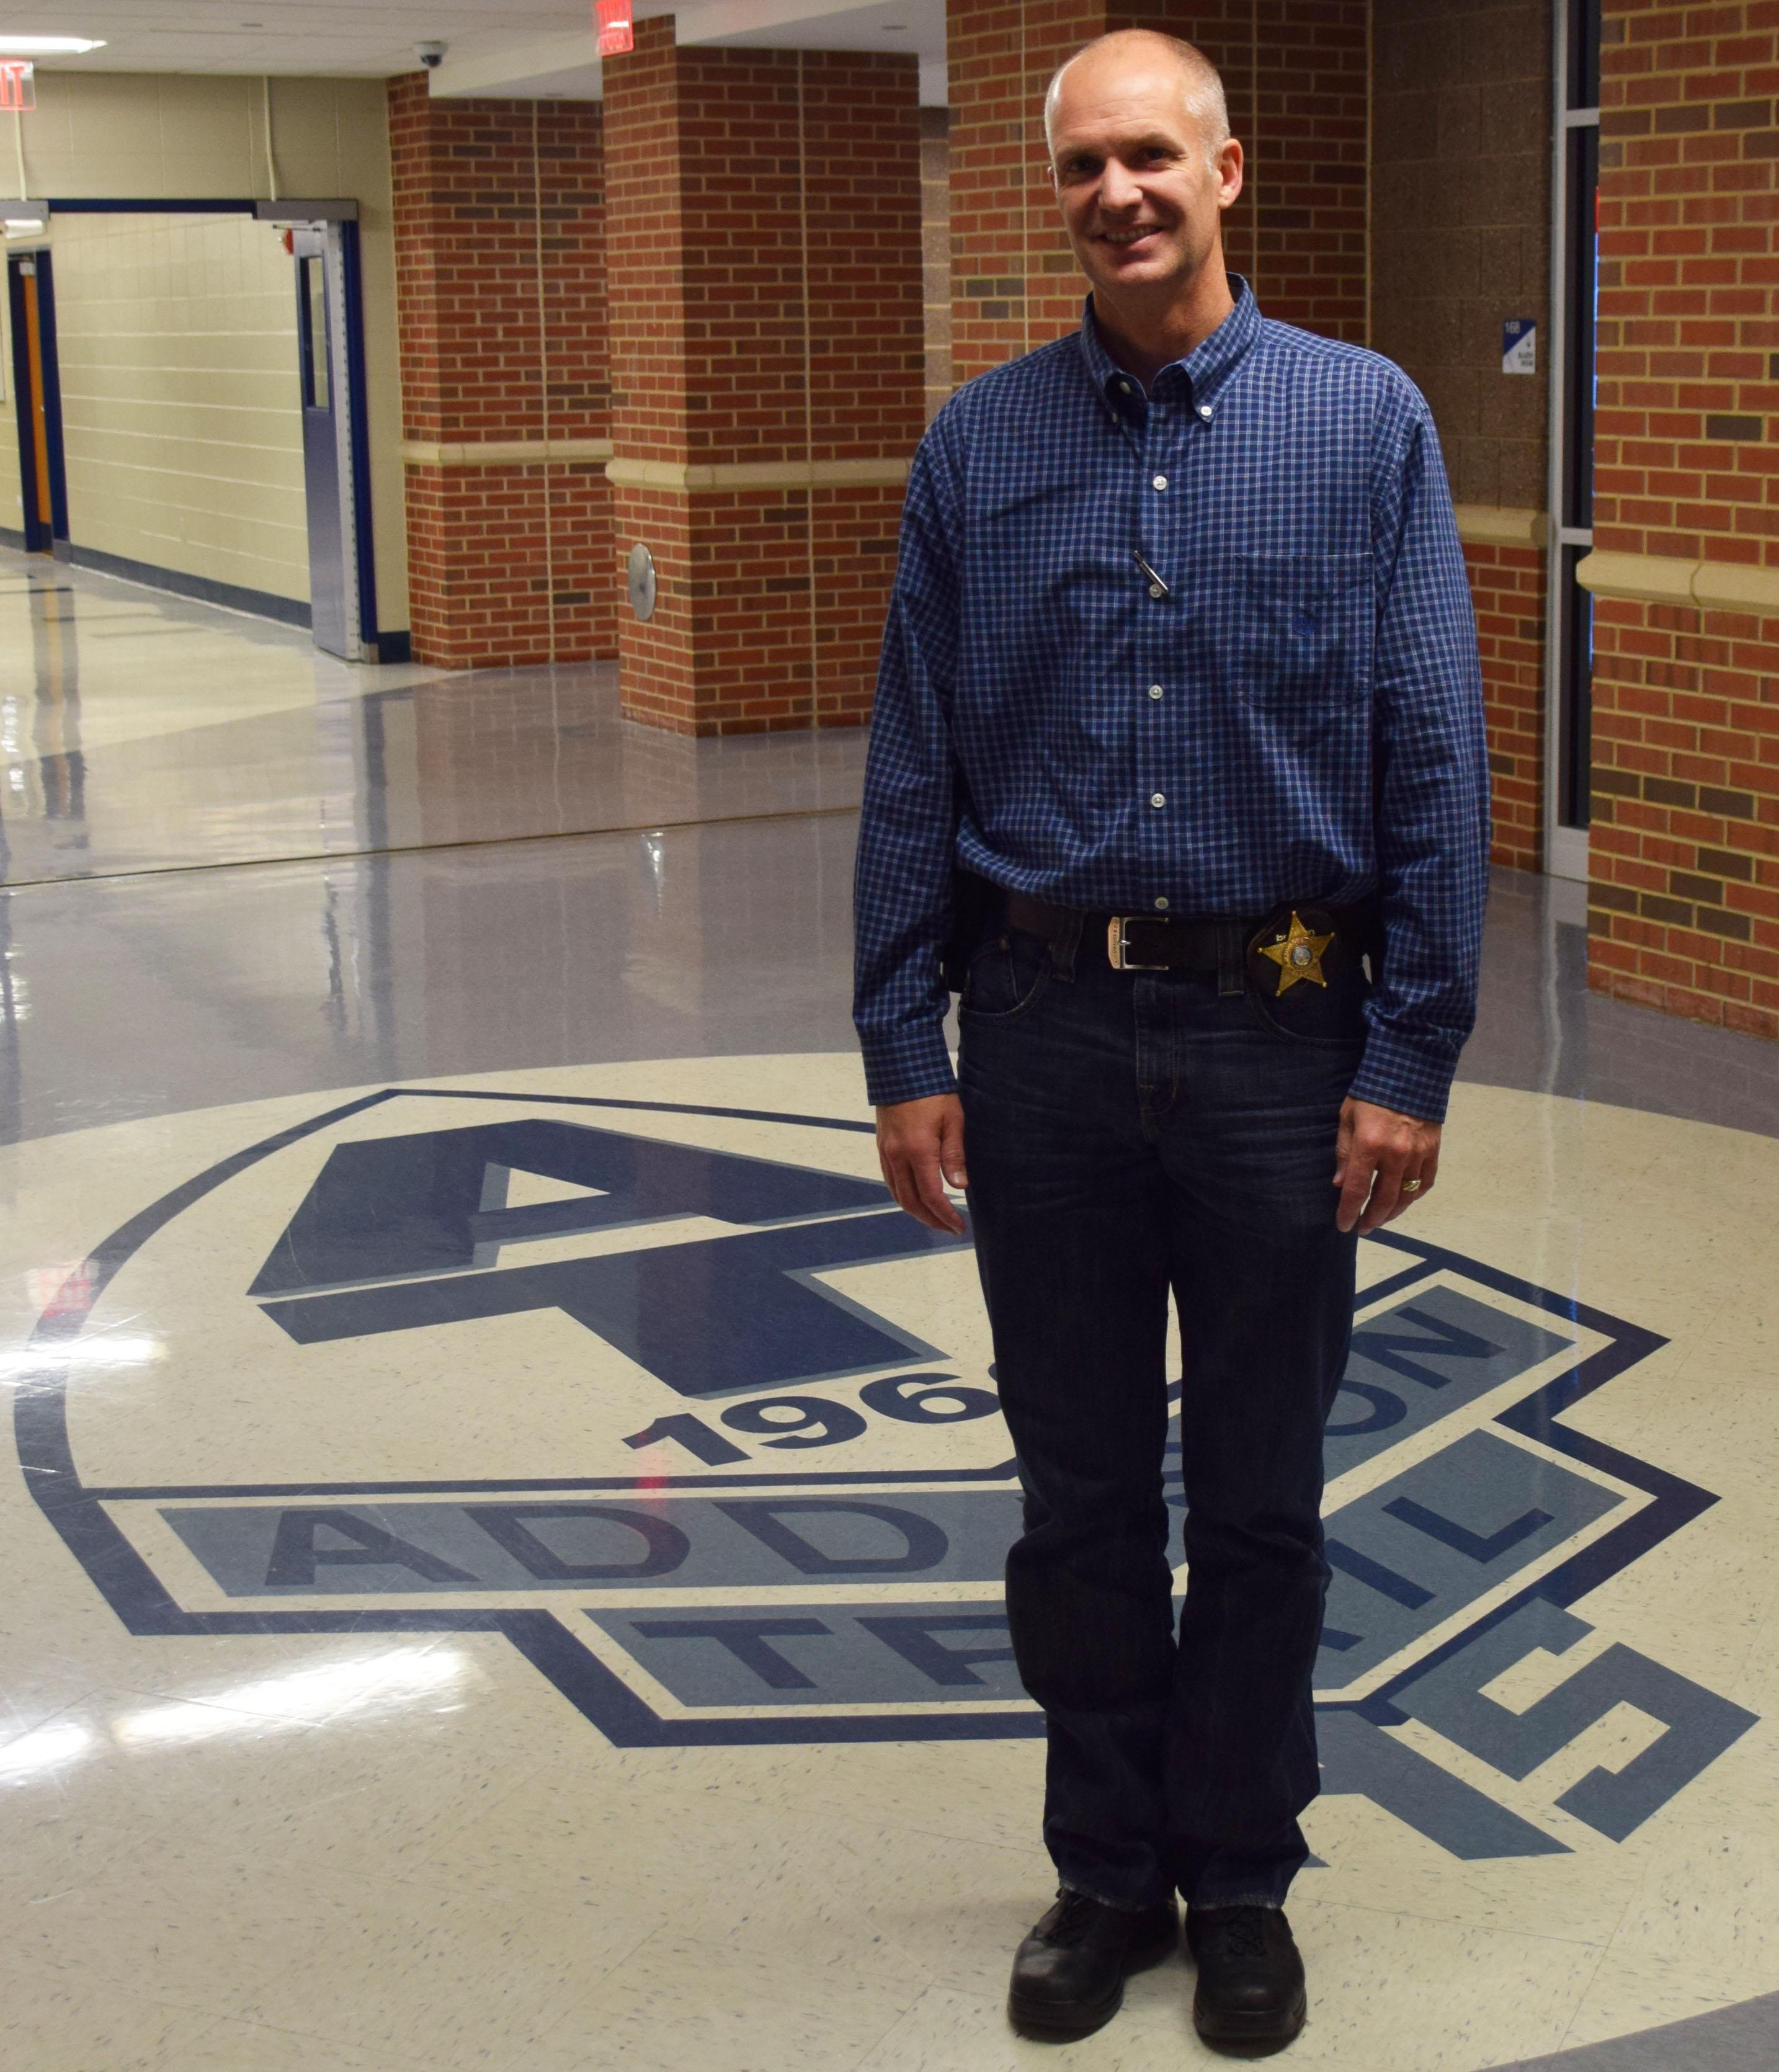 Addison Trail welcomes new School Resource Officer